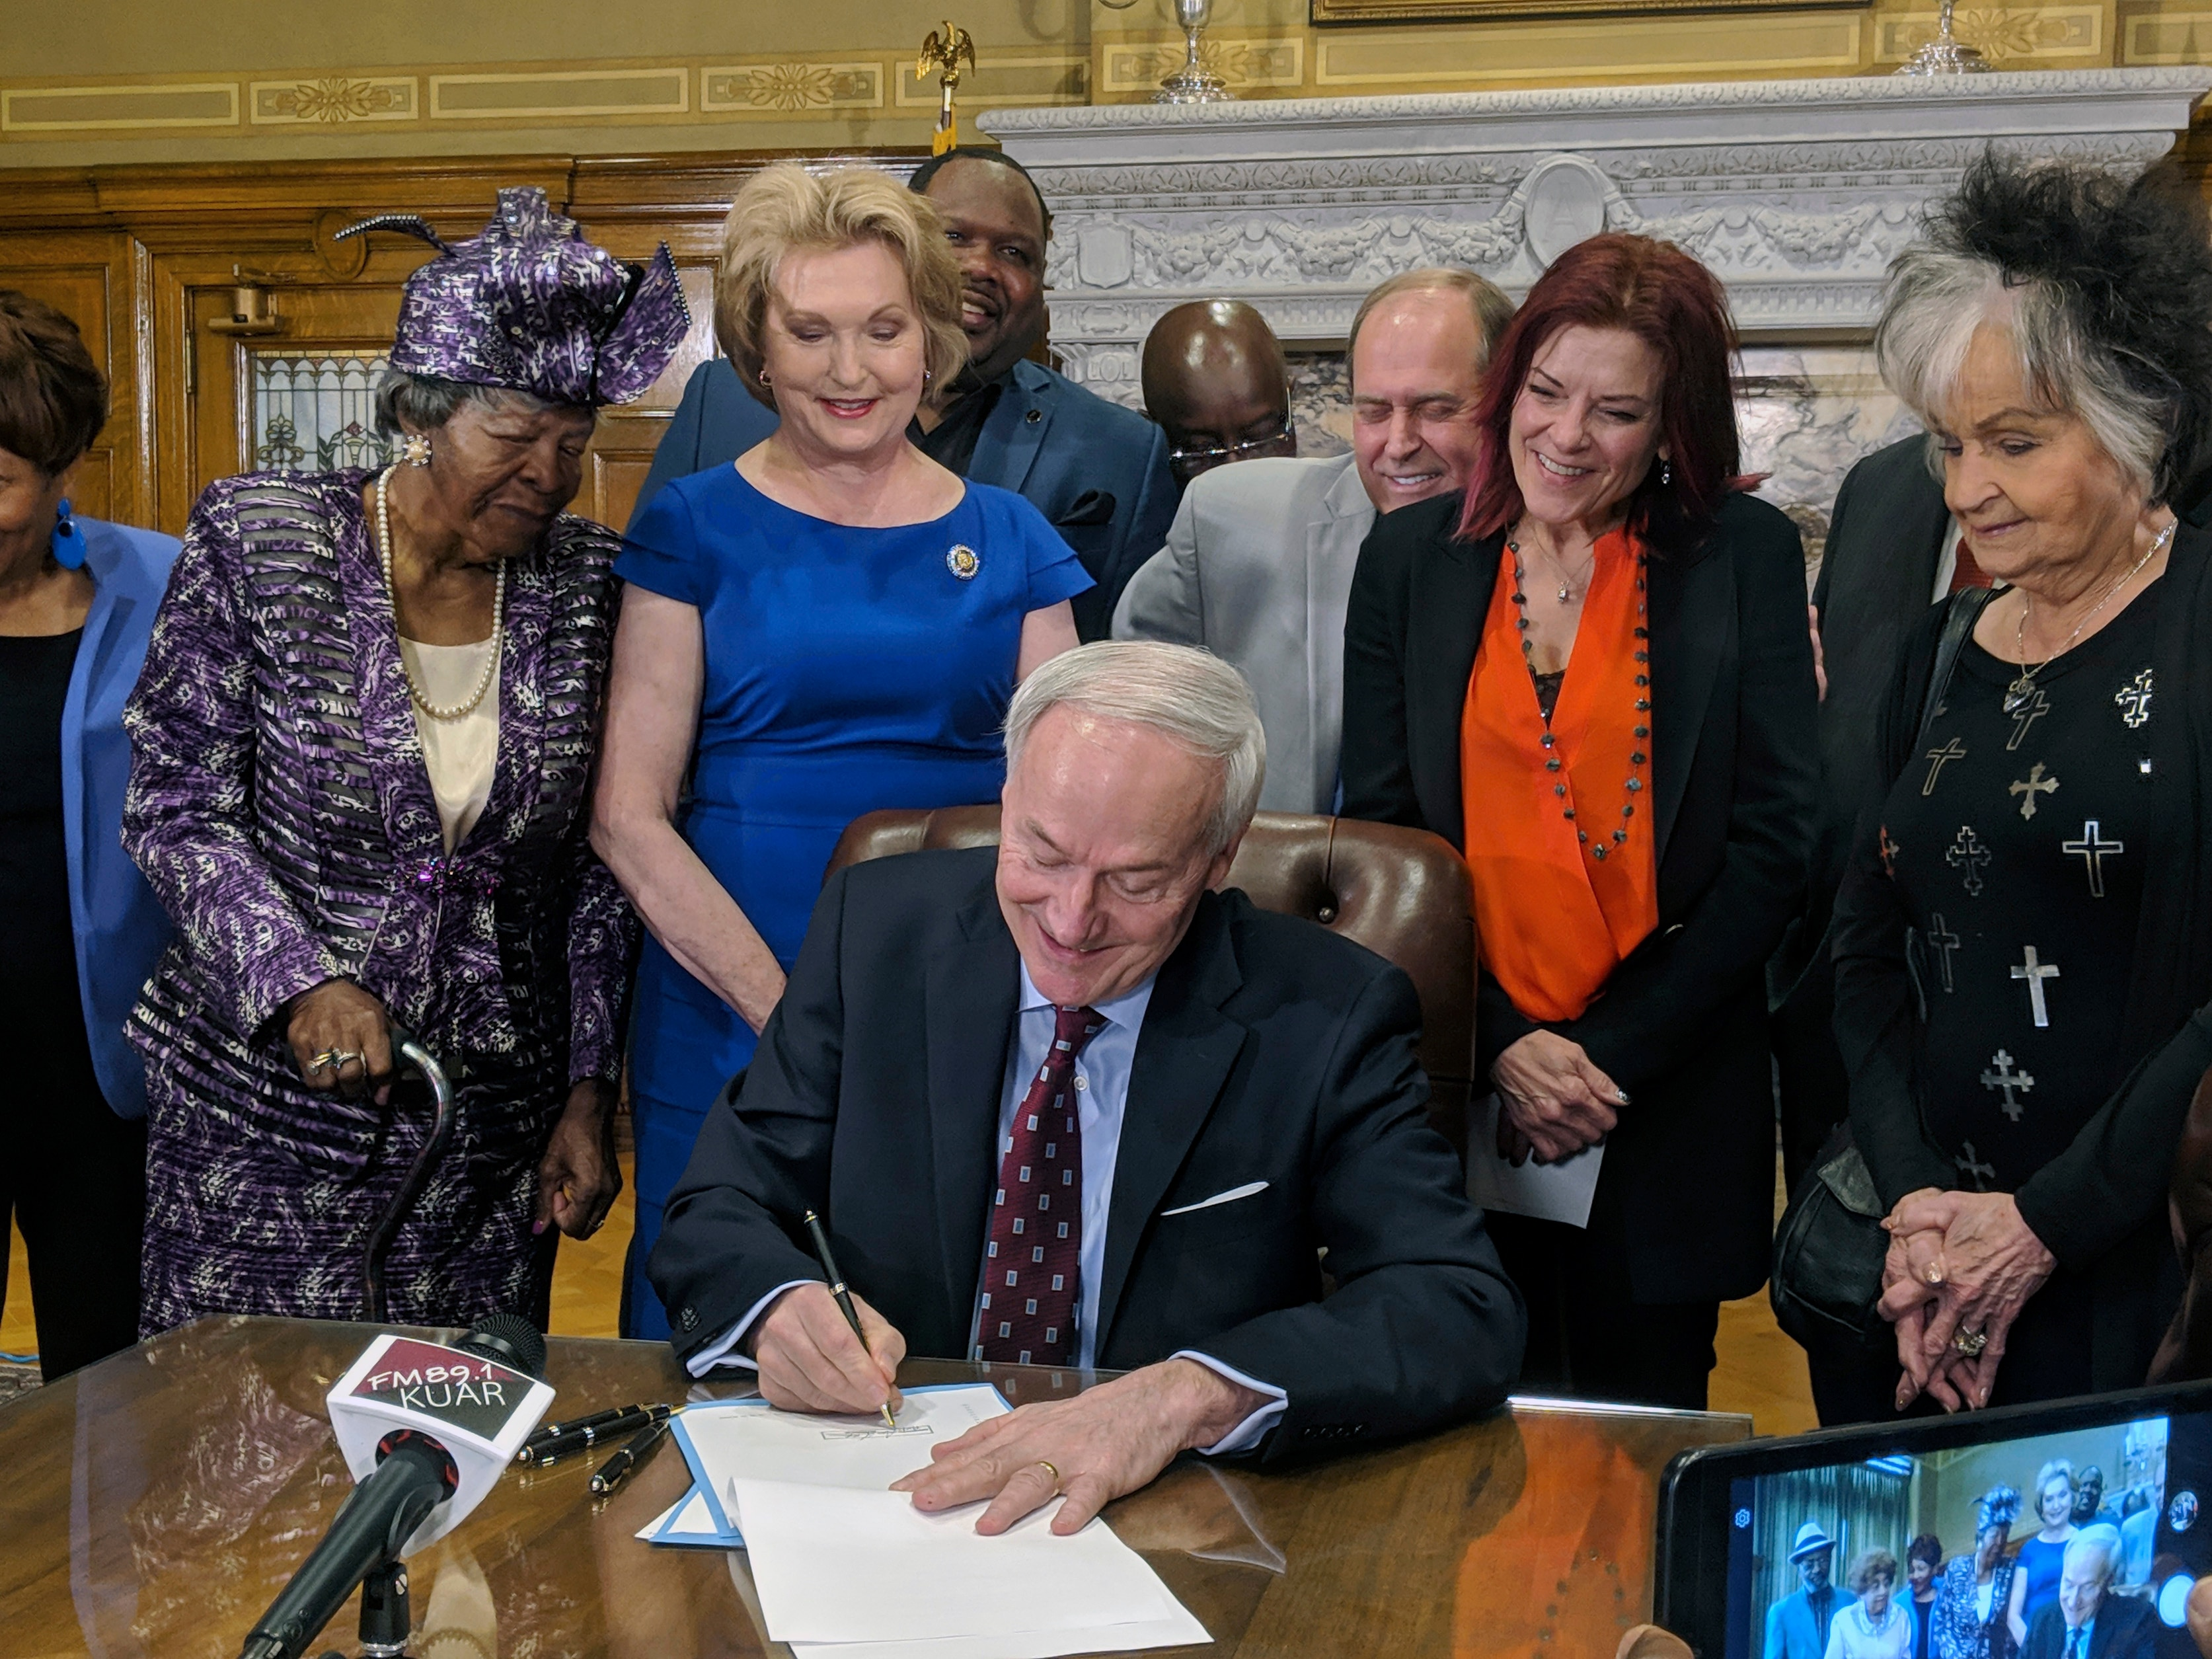 Arkansas Governor Asa Hutchinson signs a bill into law that replaces the states two statues with statues of civil rights leader Daisy Bates and Johnny Cash.